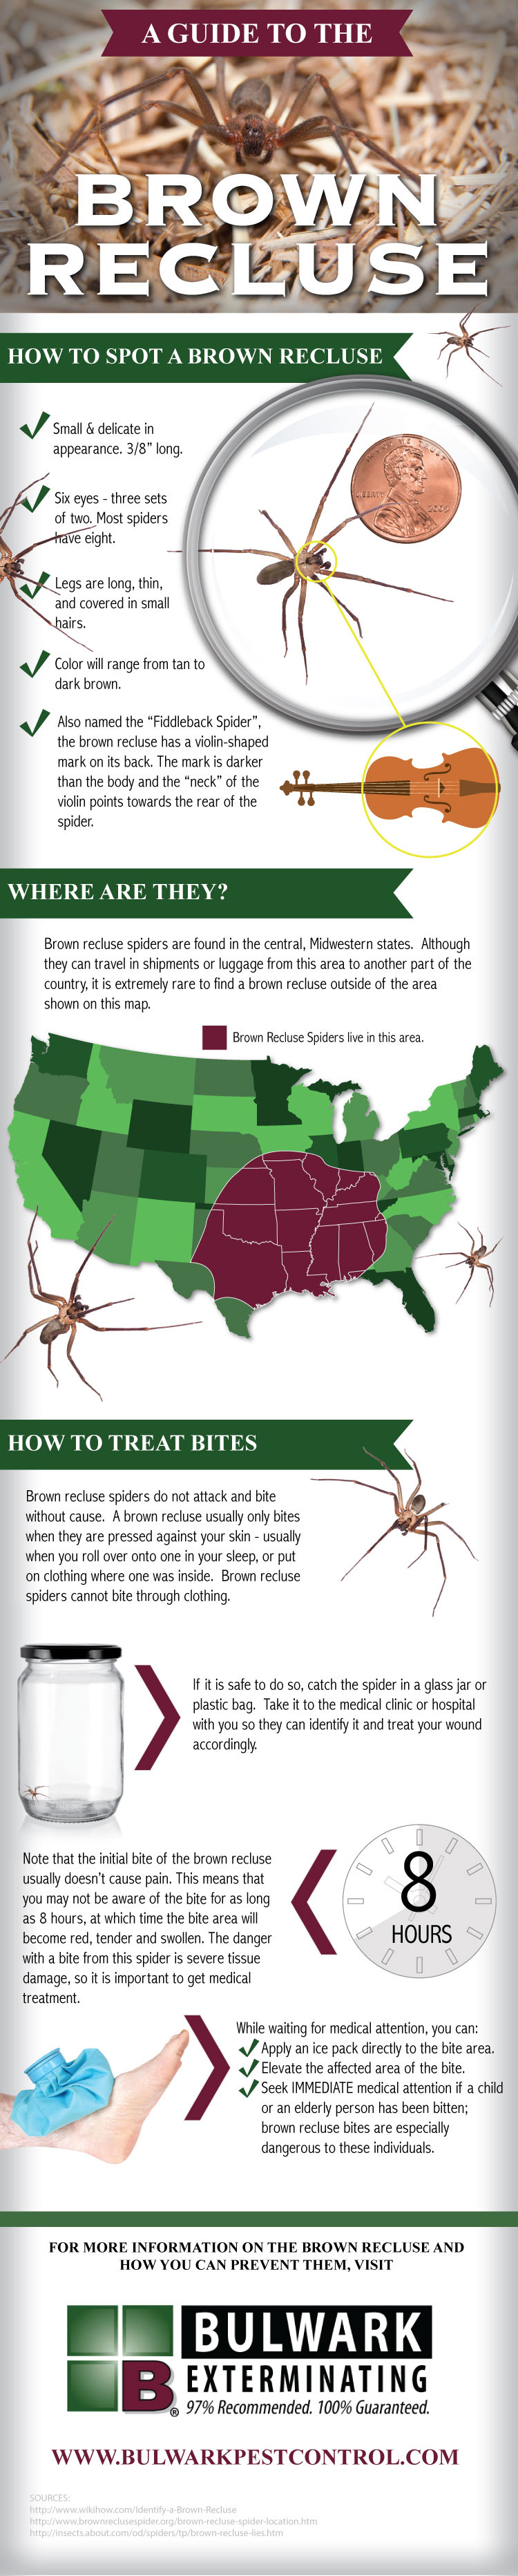 A Guide to the Brown Recluse Spider